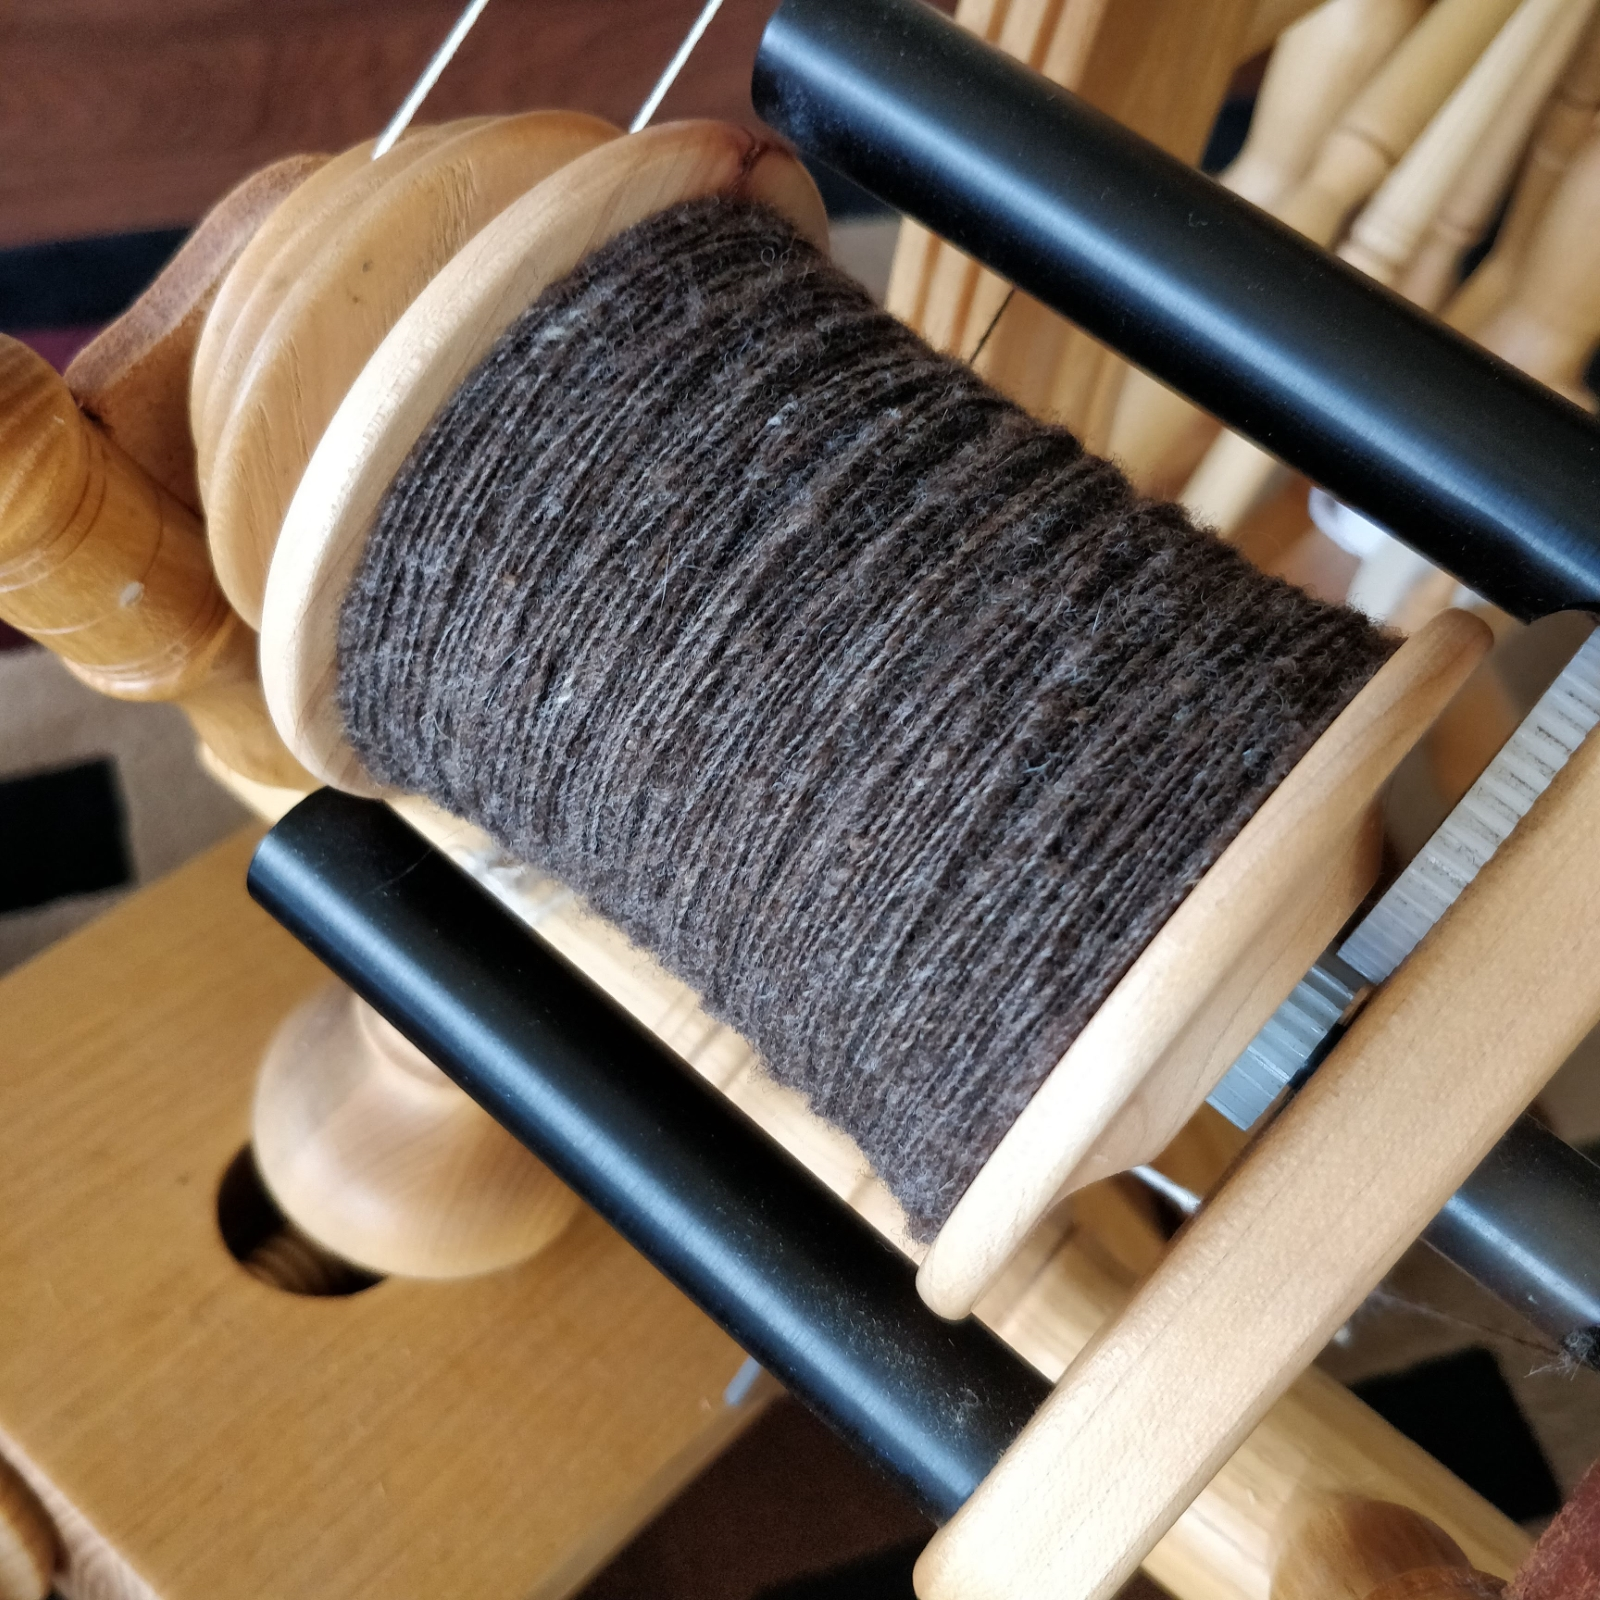 An almost-full bobbin of fine brown single-ply yarn, still on the spinning wheel.